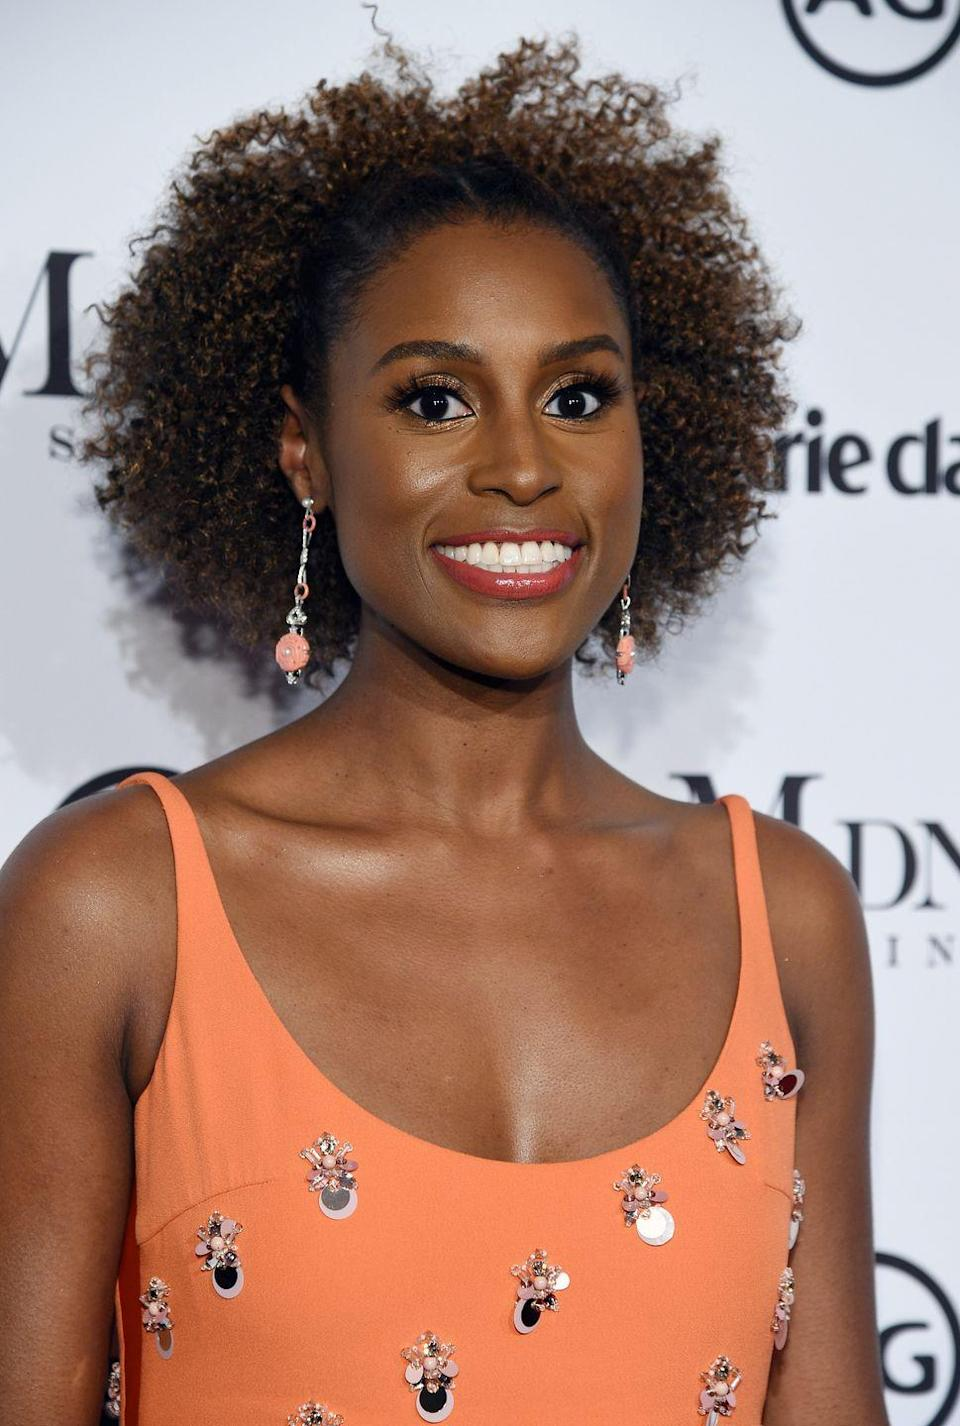 <p>The versatility of the natural hair puff makes it a go-to style on days when you want your hair out of your face but not necessarily up. This rendition from actress <strong>Issa Rae</strong> is like wearing your hair down and back at the same time. It's basically the best of of both worlds. </p>